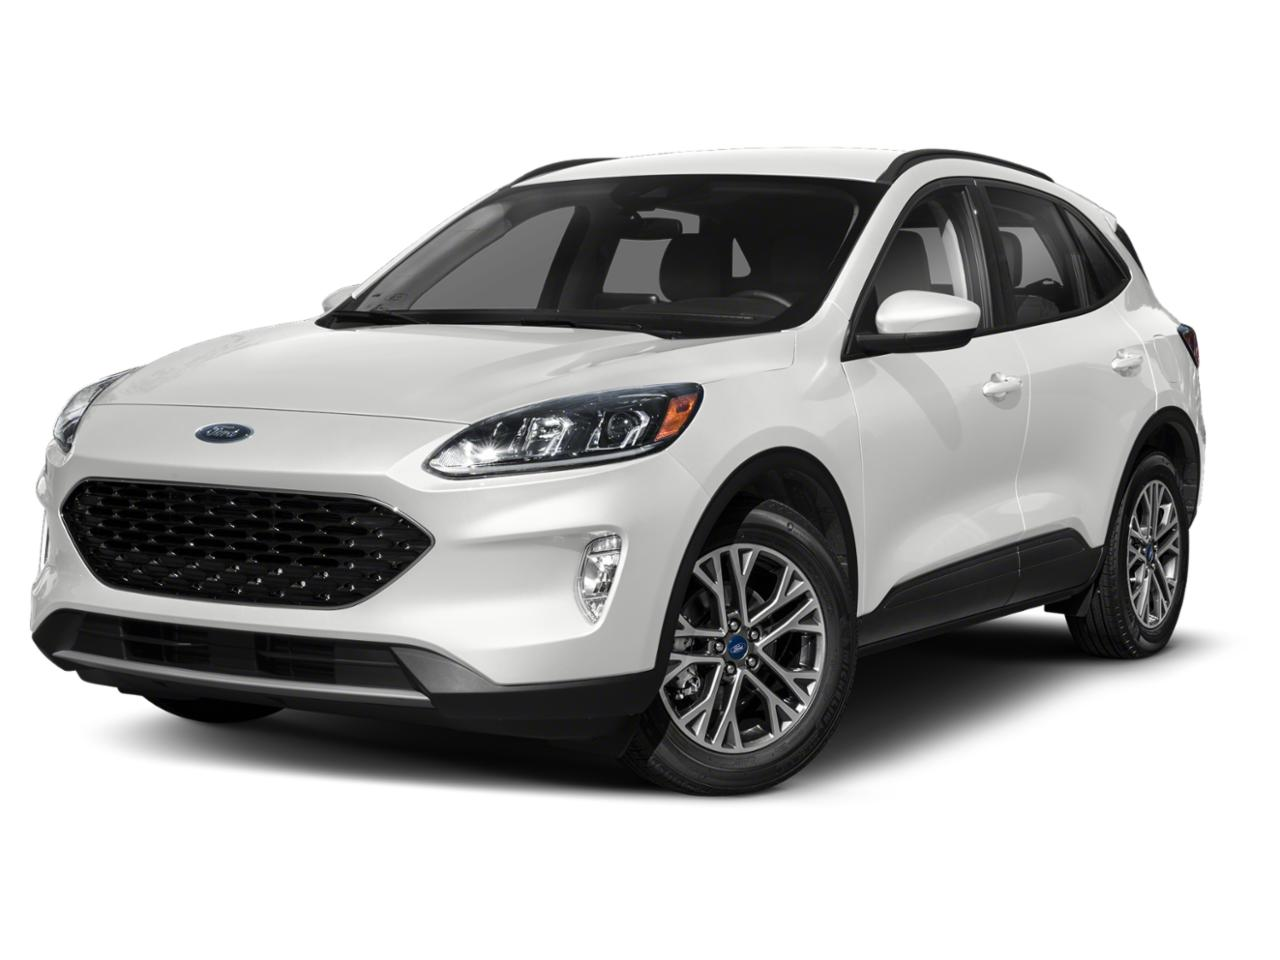 2020 Ford Escape Vehicle Photo in Neenah, WI 54956-3151